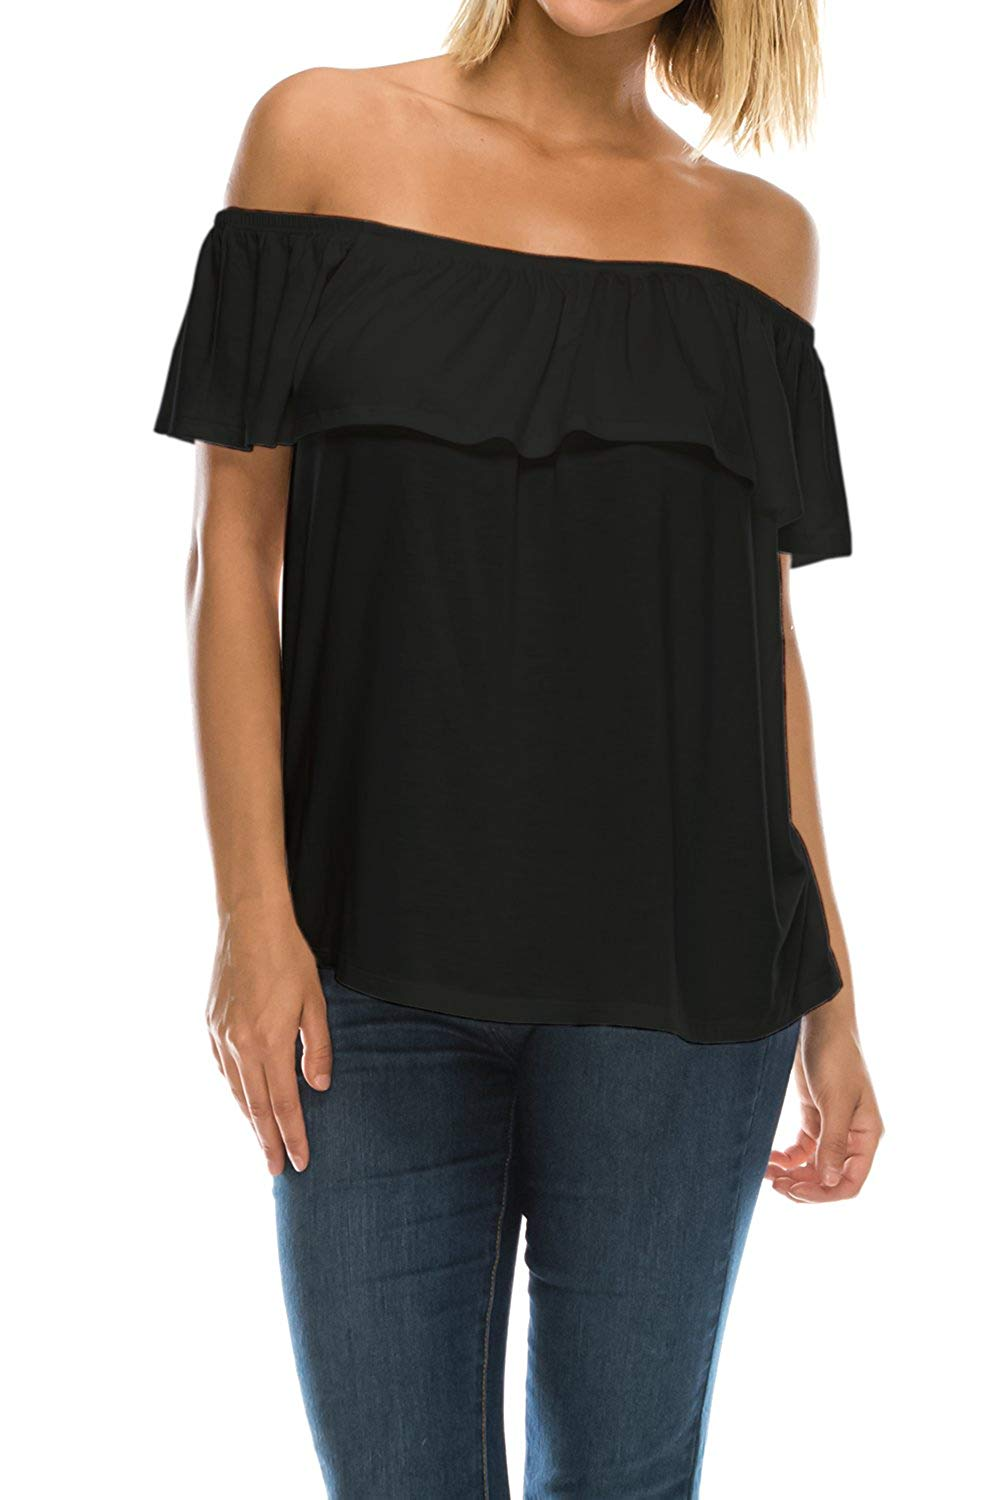 91ee1d18e6feb Get Quotations · Womens On Off Shoulder Ruffle Neck Flowy Blouse Top Made  in USA